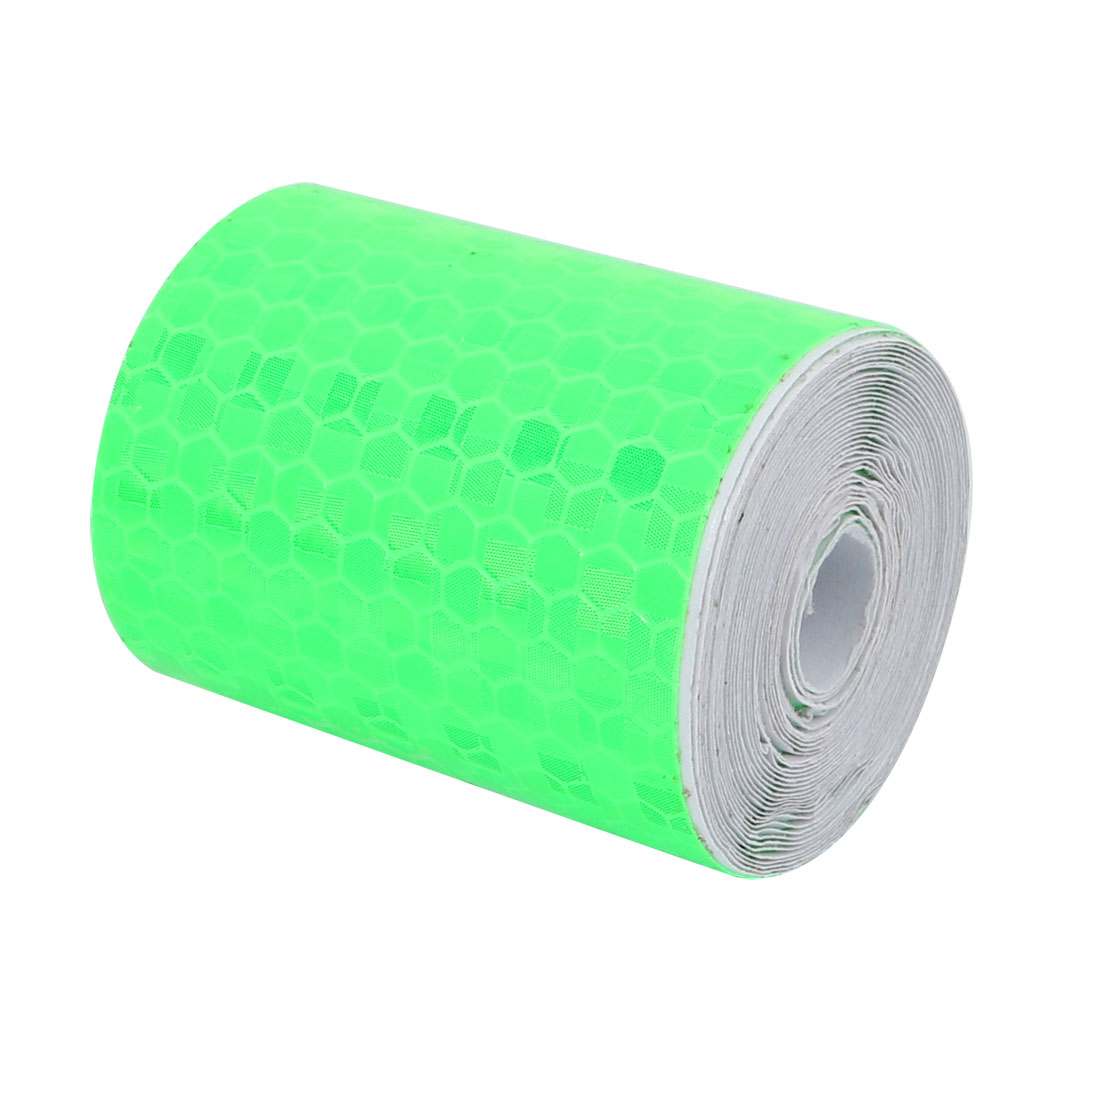 5cm Wide 2.5M Long Honeycomb Single Sided Adhesive Reflective Warning Tape Green